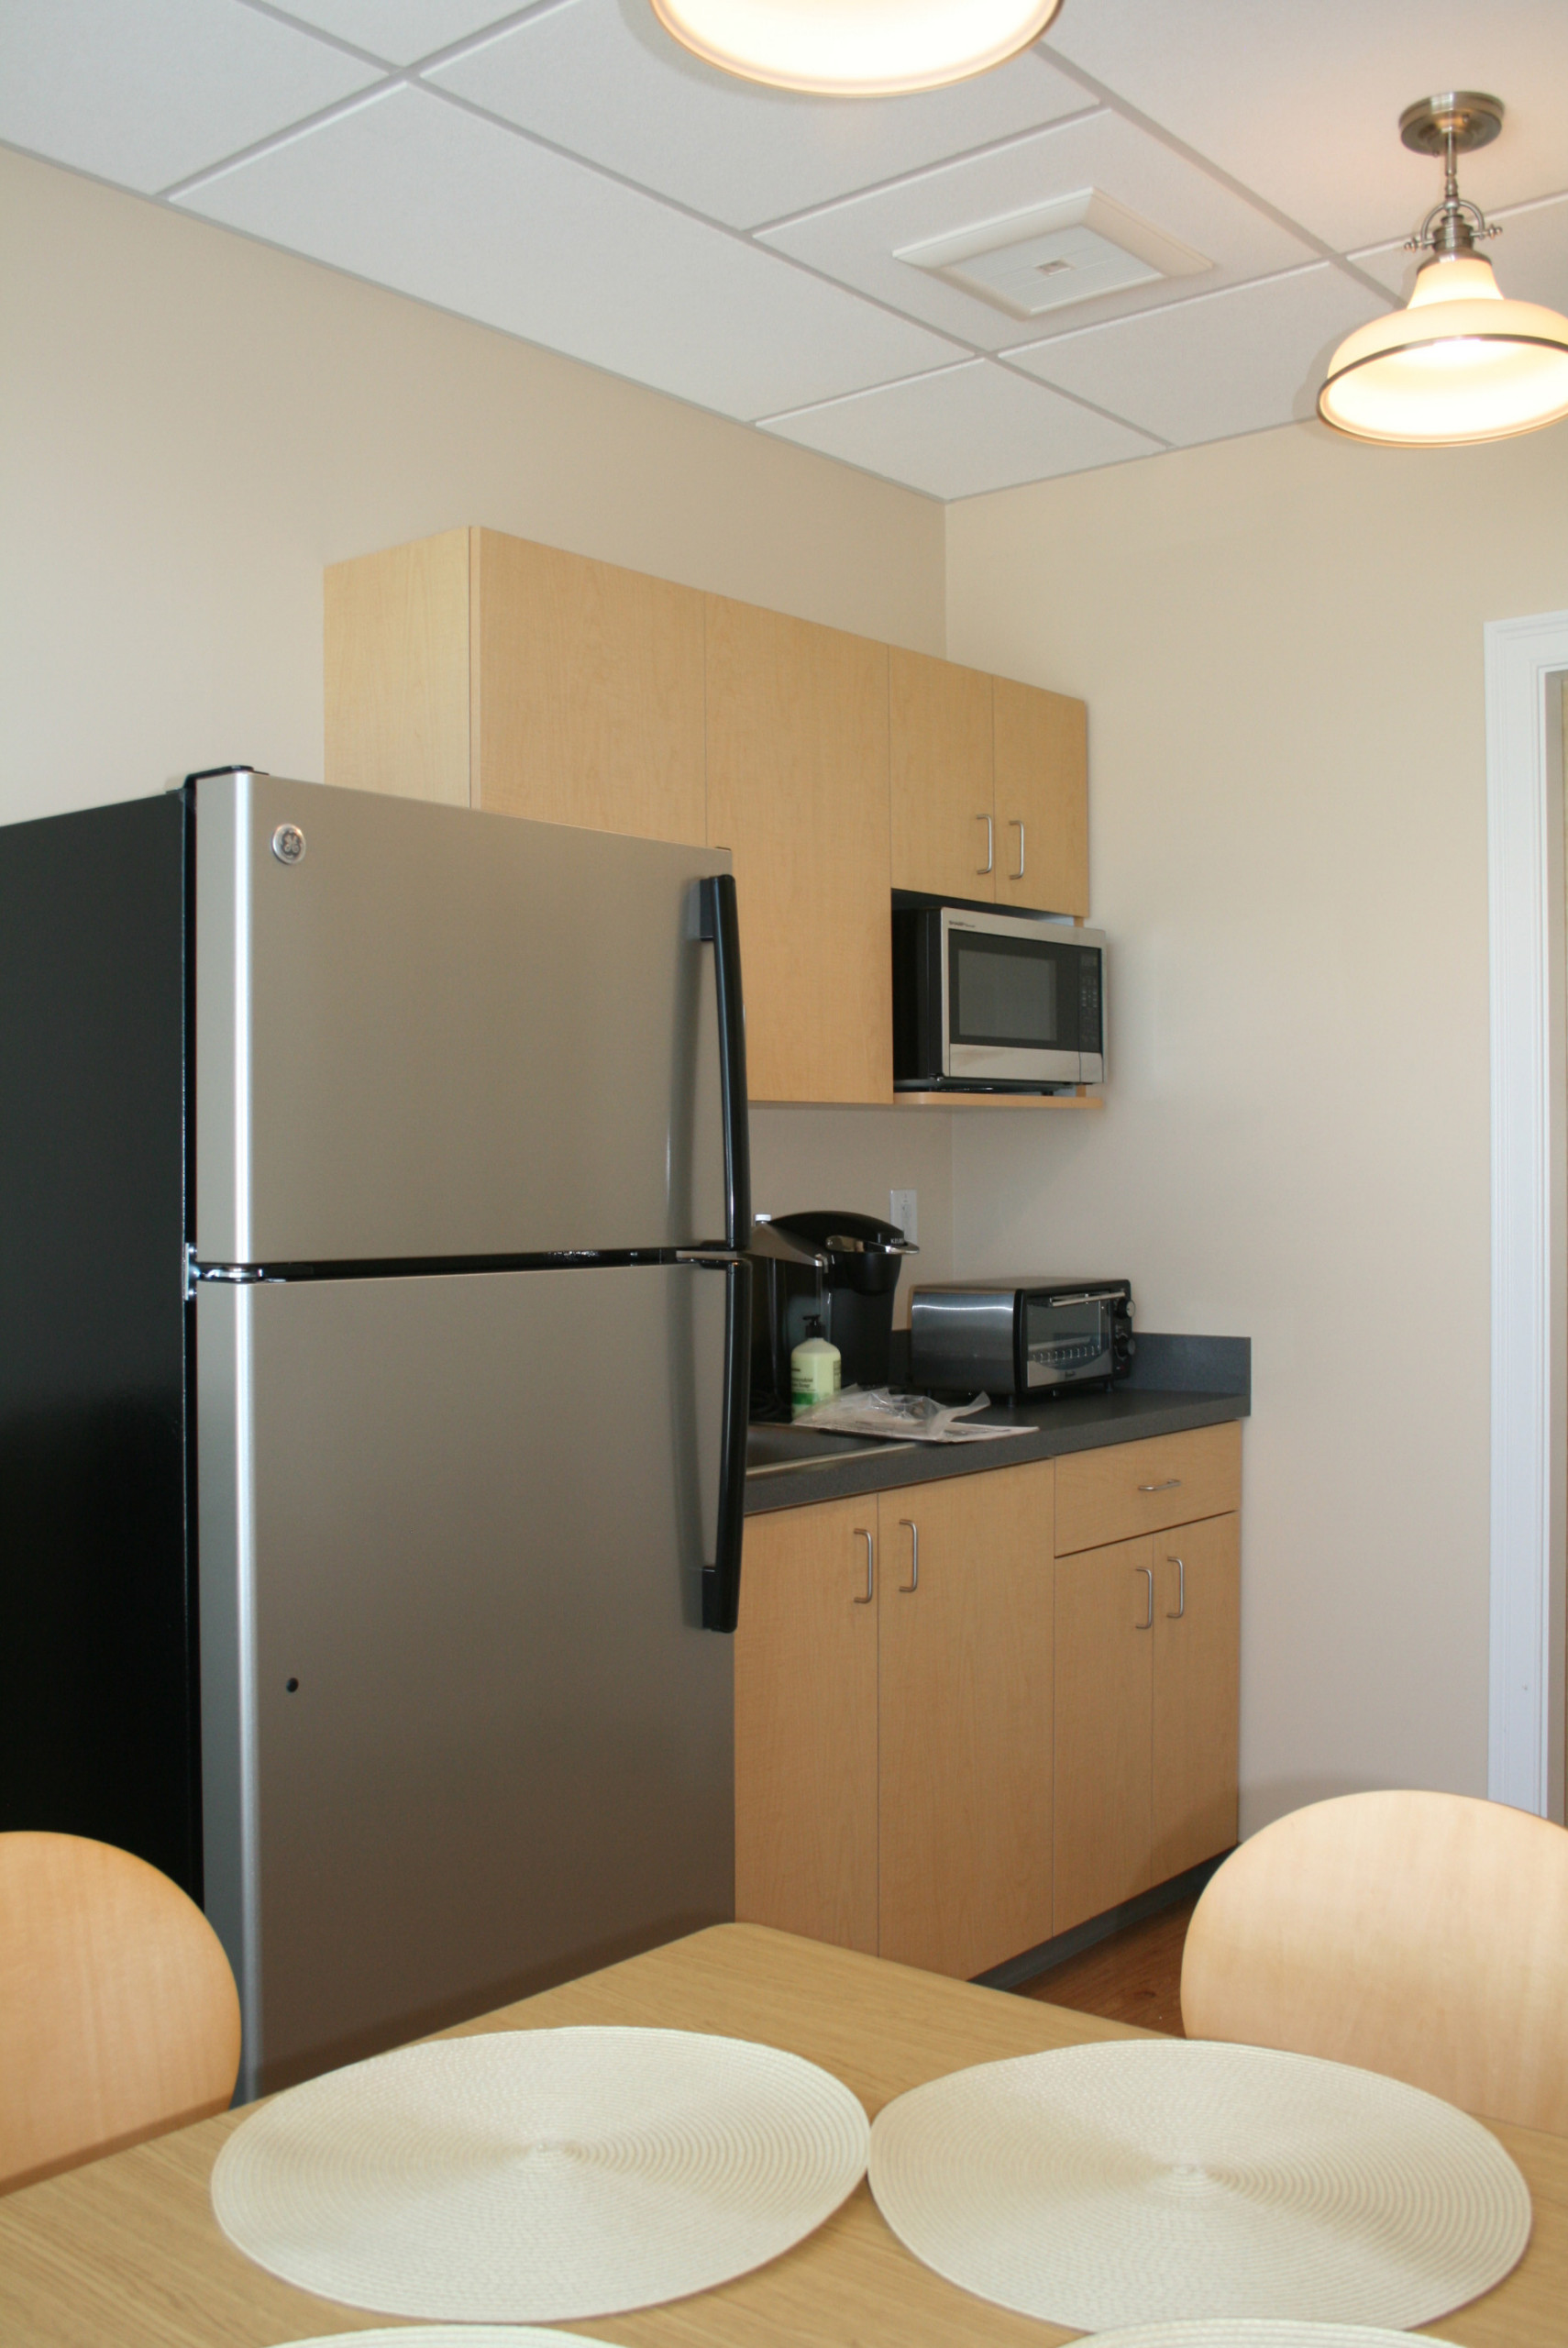 Physician One- Urgent Care Walk-In Clinic